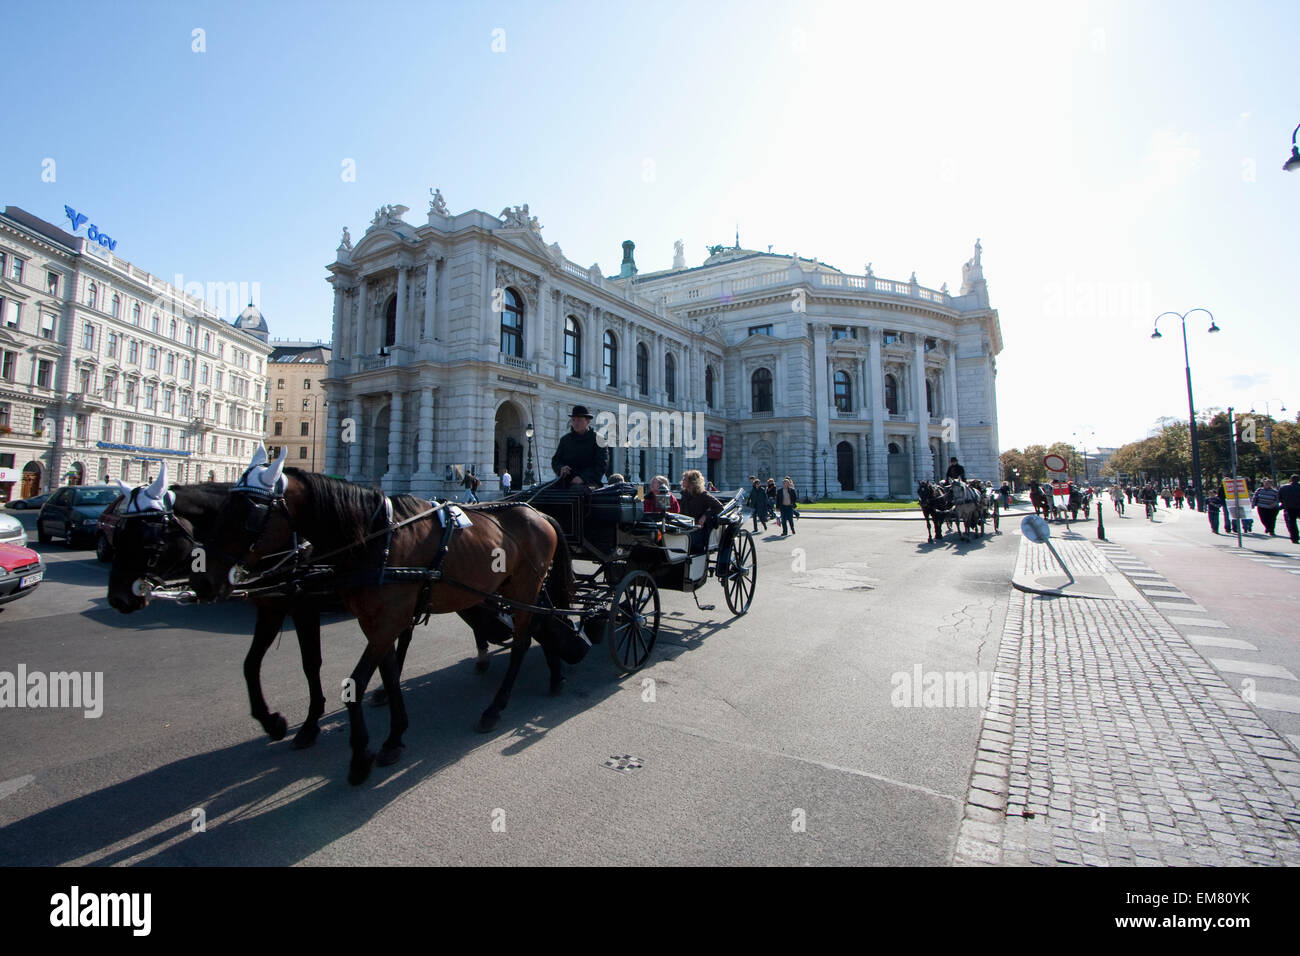 Fiaker (Viennese two-horse hackney carriage) by the Burgtheater (Imperial Court Theatre), Vienna, Wien, Austria - Stock Image